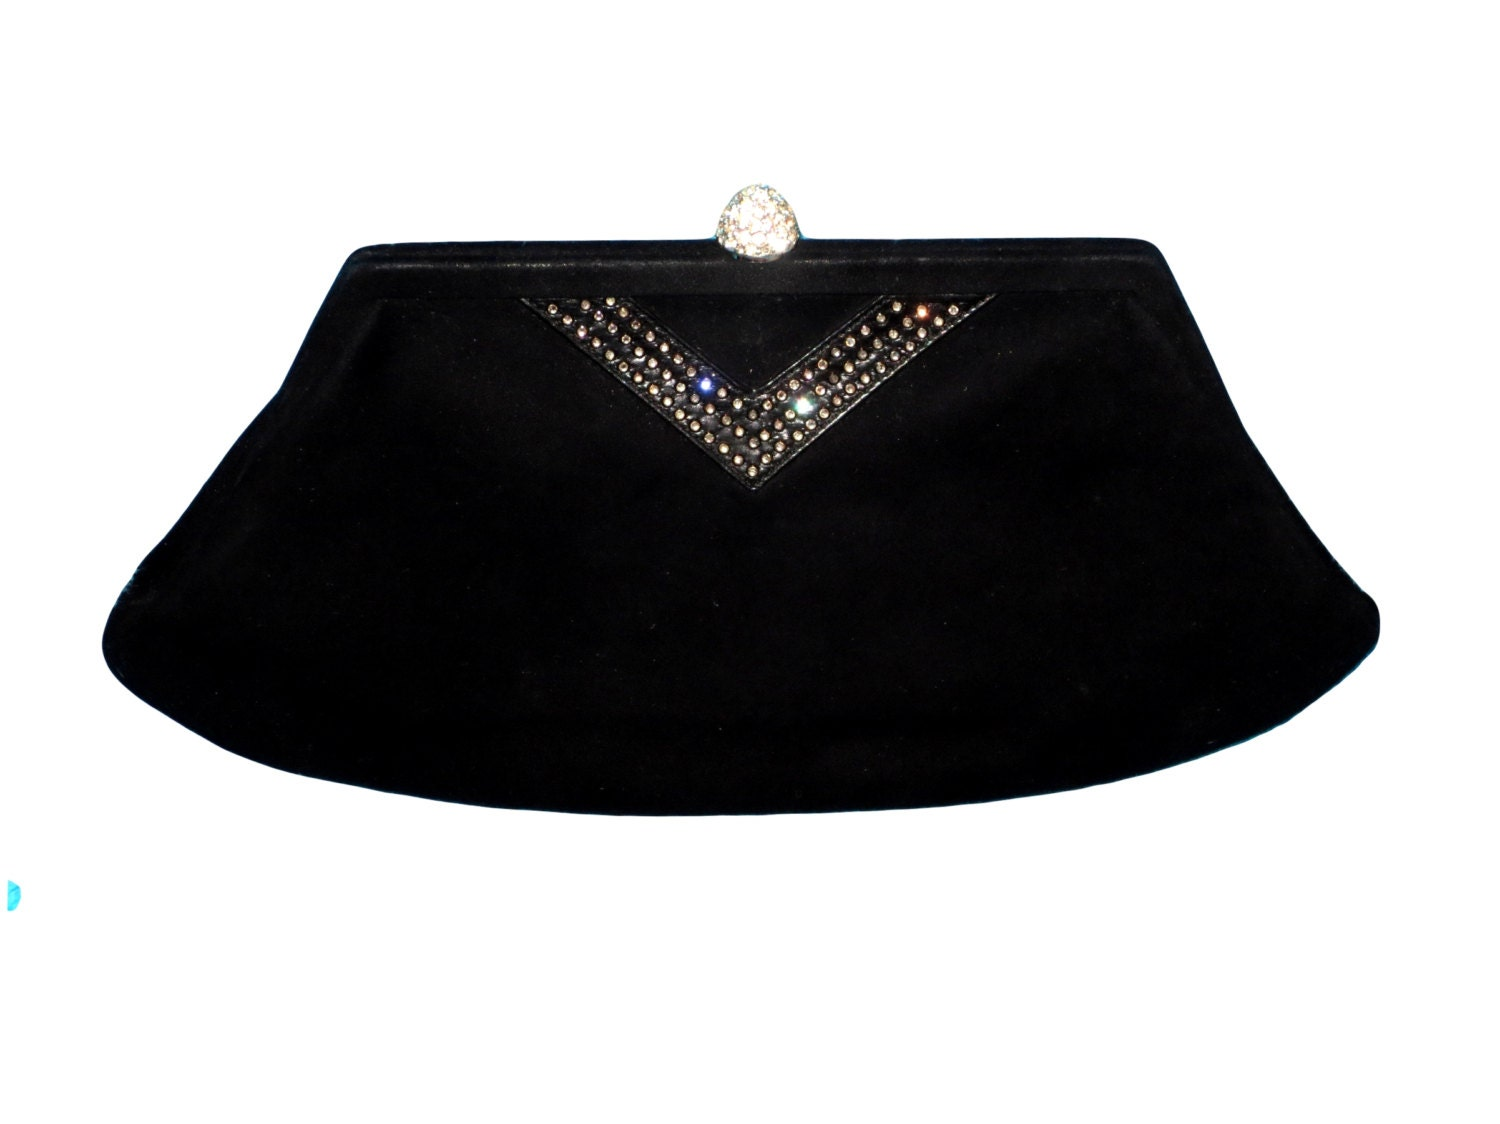 Shop black suede clutch bags from Alexander McQueen, Bottega Veneta, Jimmy Choo and from Barneys New York, NET-A-PORTER, Saks Fifth Avenue and many more. Find thousands of new high fashion items in one place.